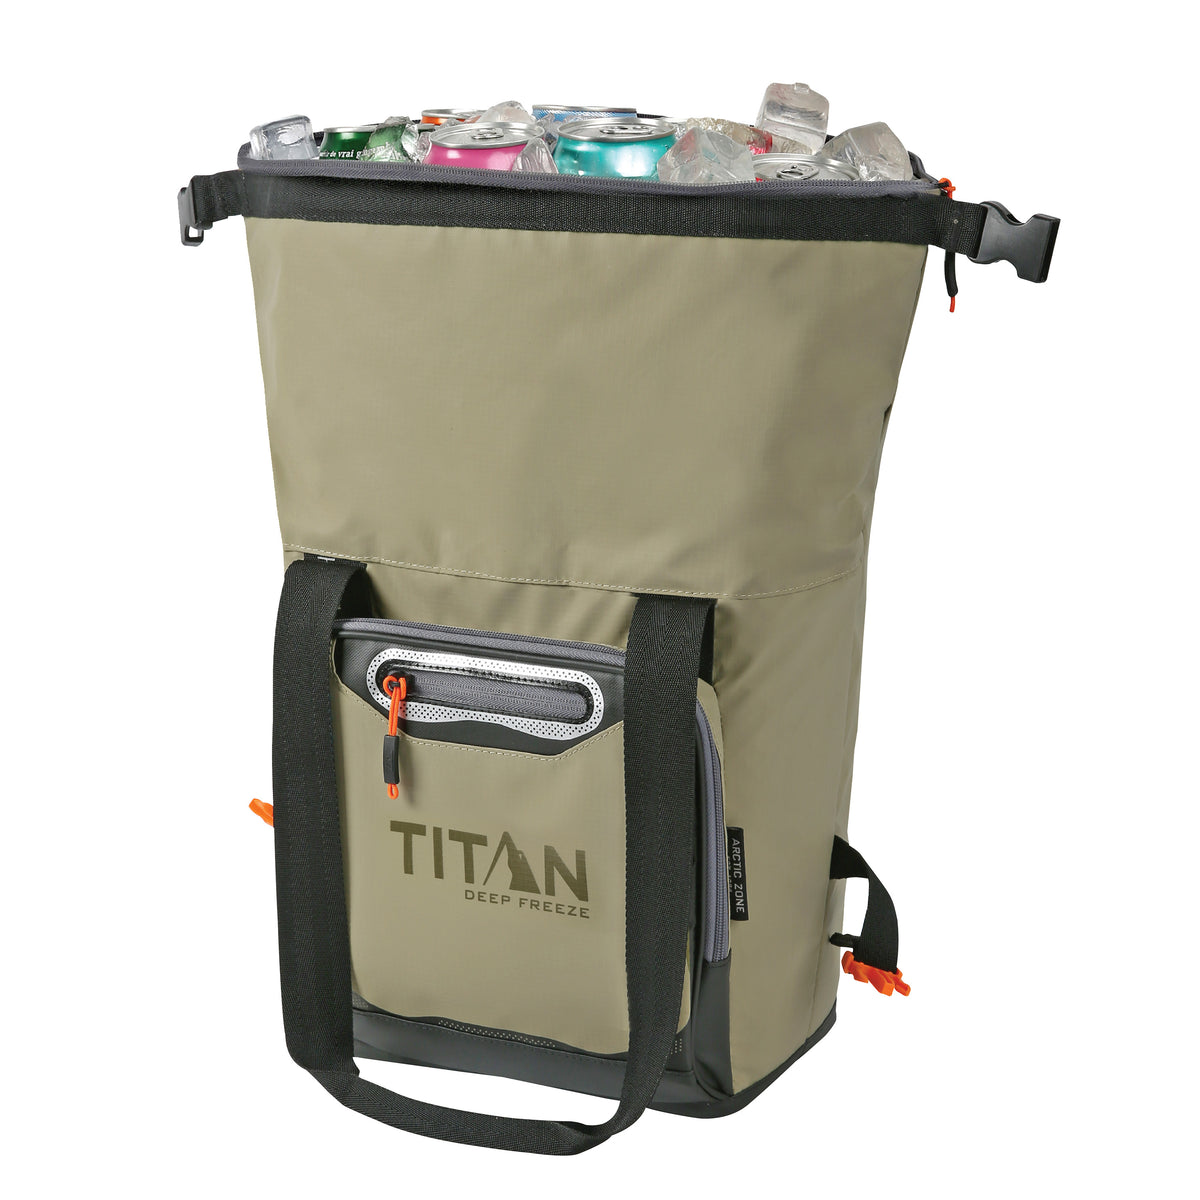 Titan Deep Freeze 12 Can Insulated Roll-Top Tote - Tan - Unrolled, propped